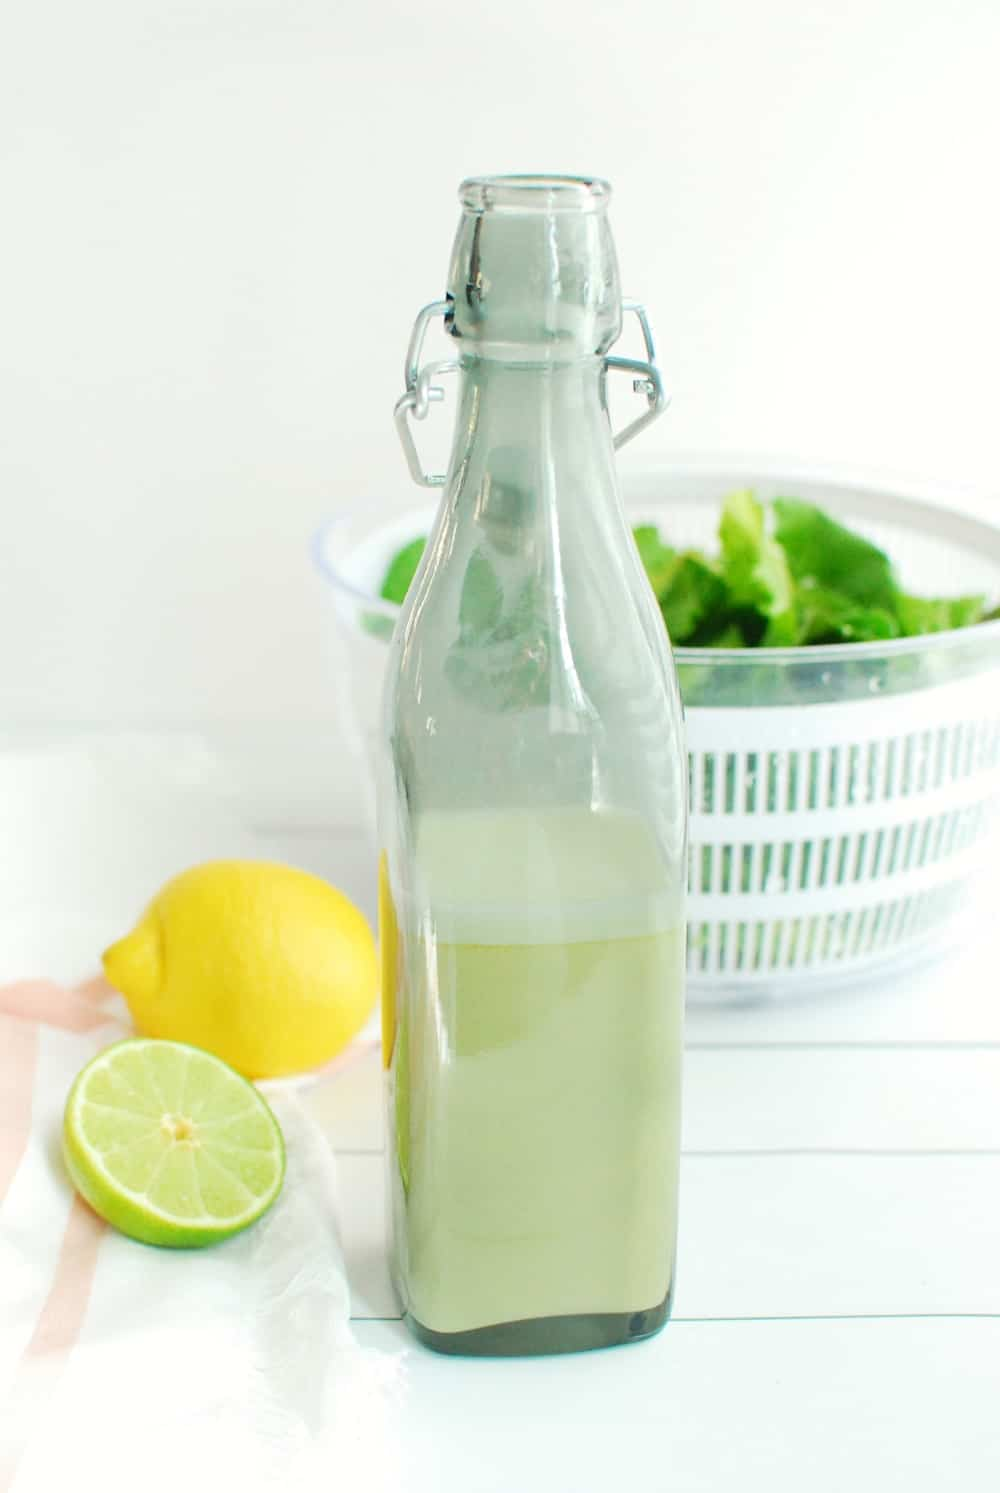 A bottle of salad dressing next to a sliced lime and a napkin.